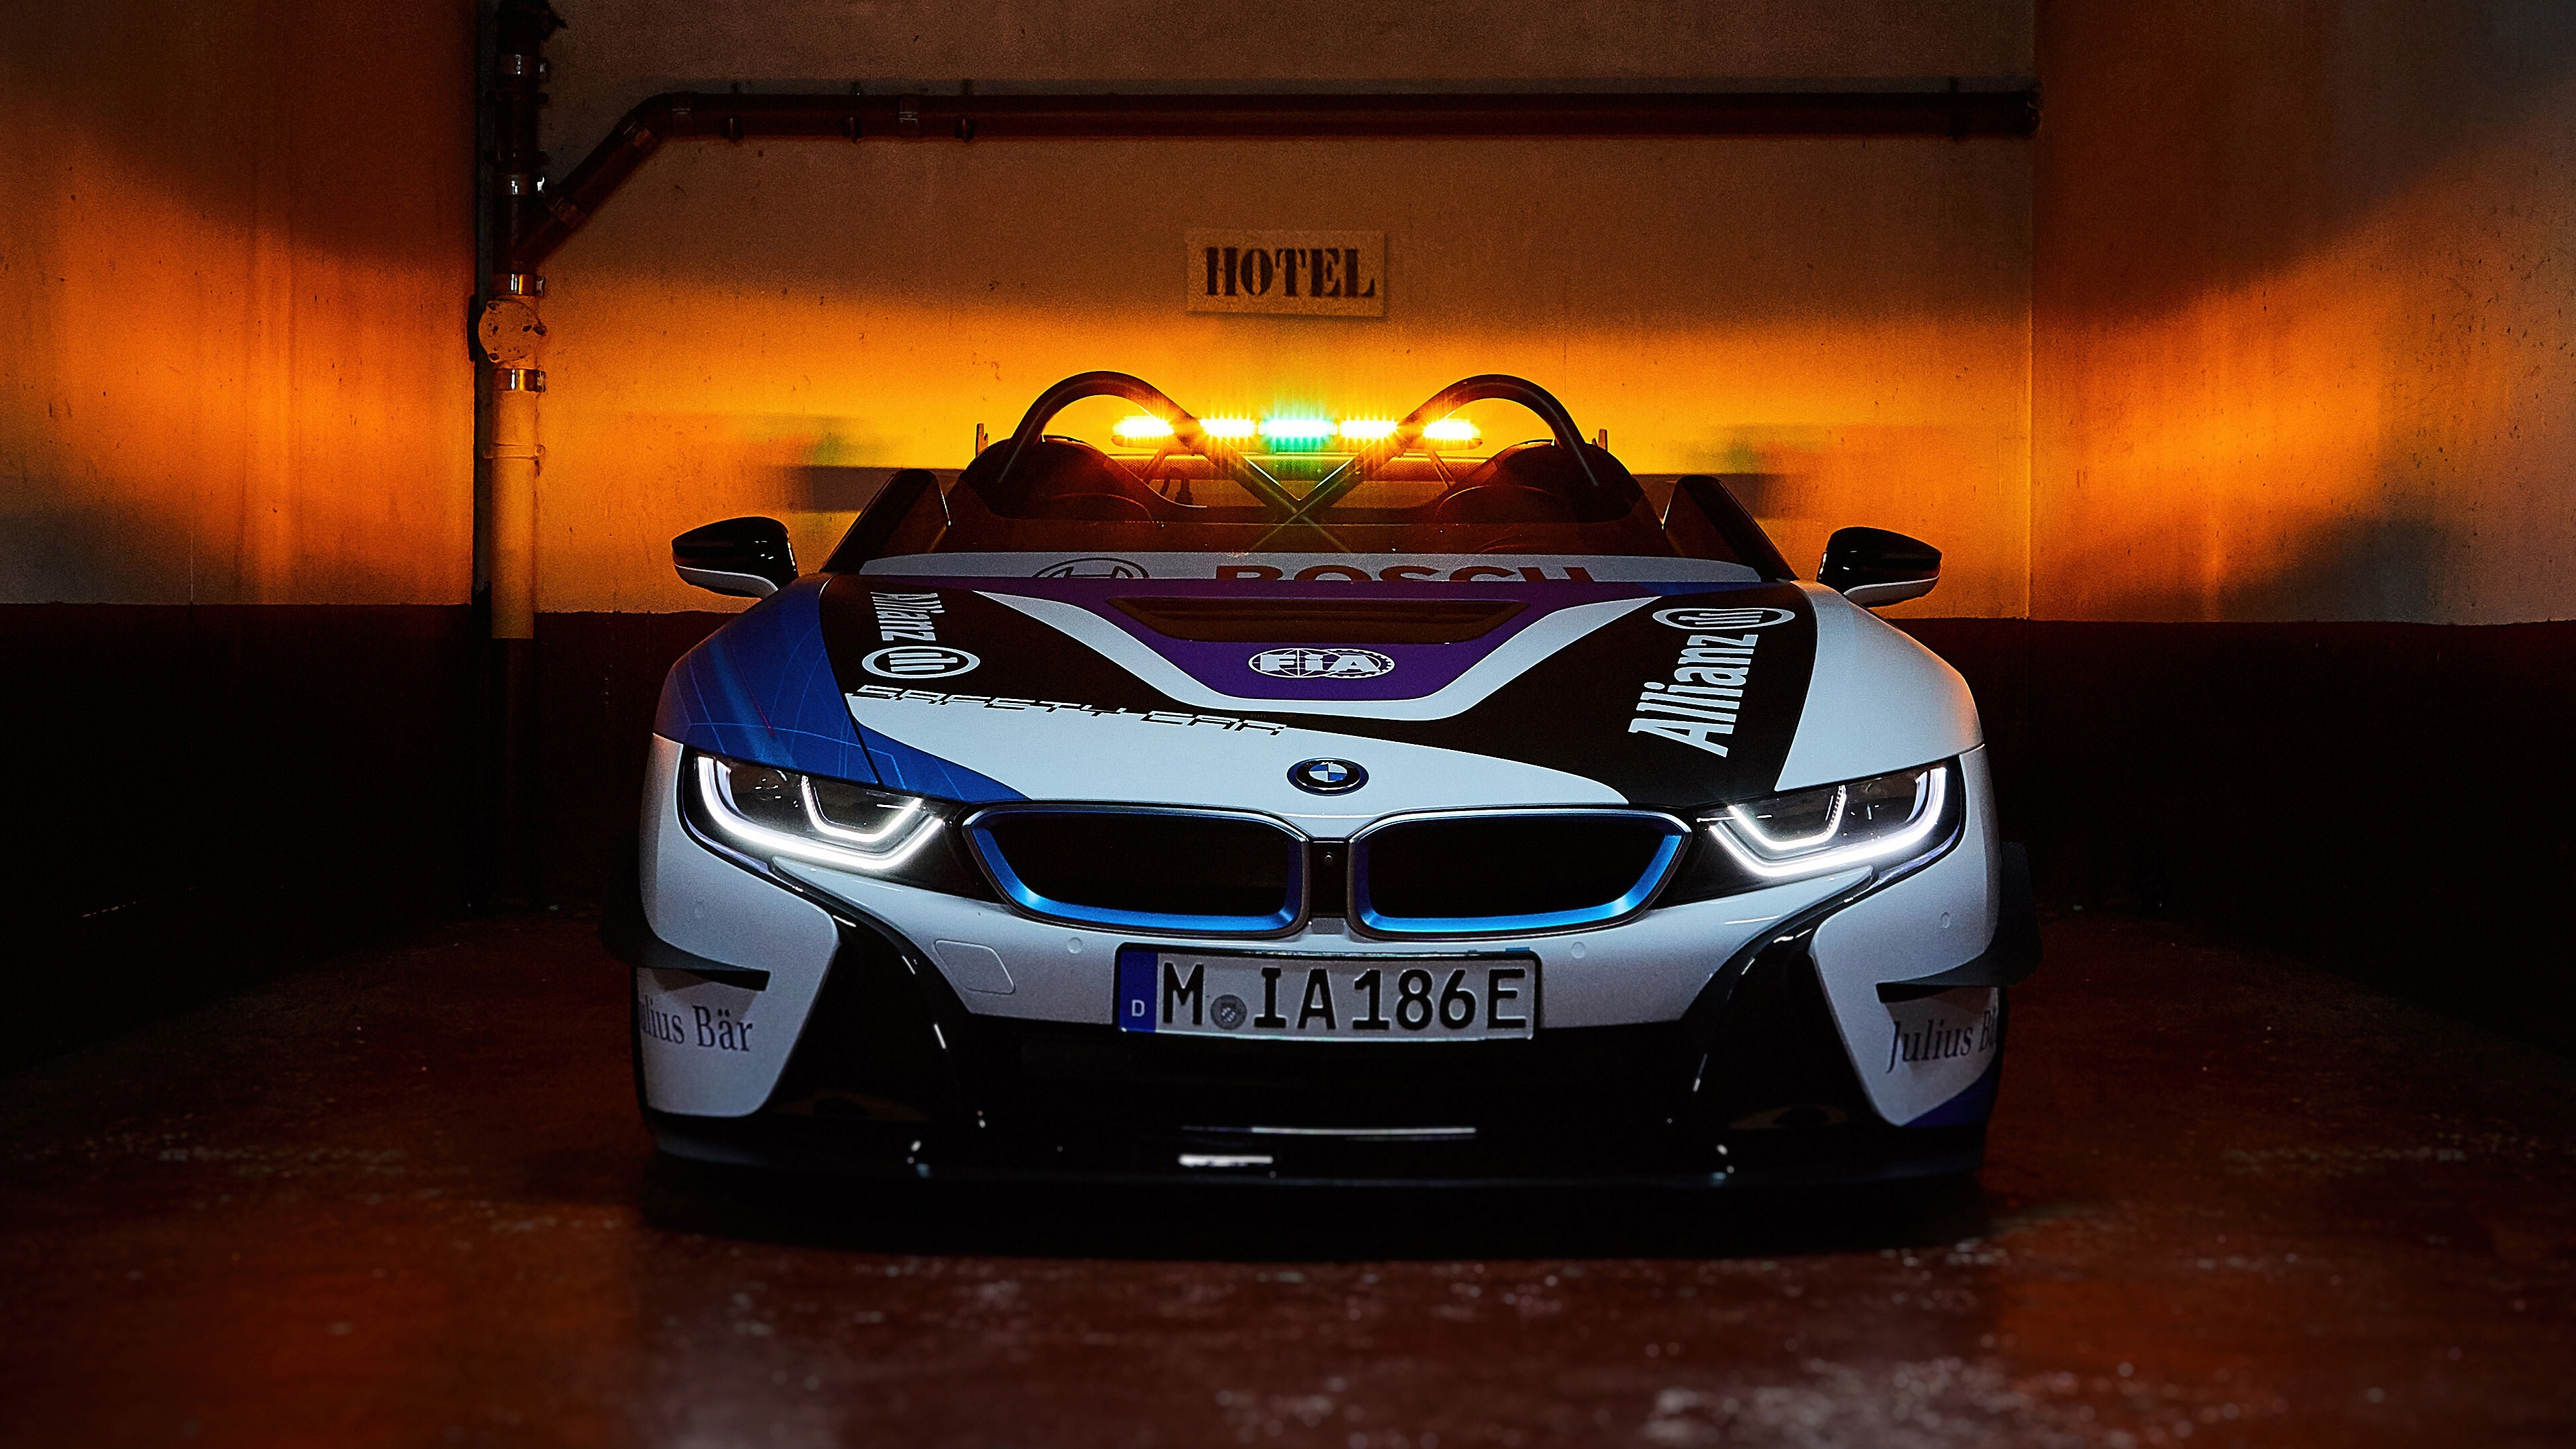 Bmw Mountain View >> 4K Wallpaper of BMW I8 Roadster Formula E Safety Car | HD Wallpapers